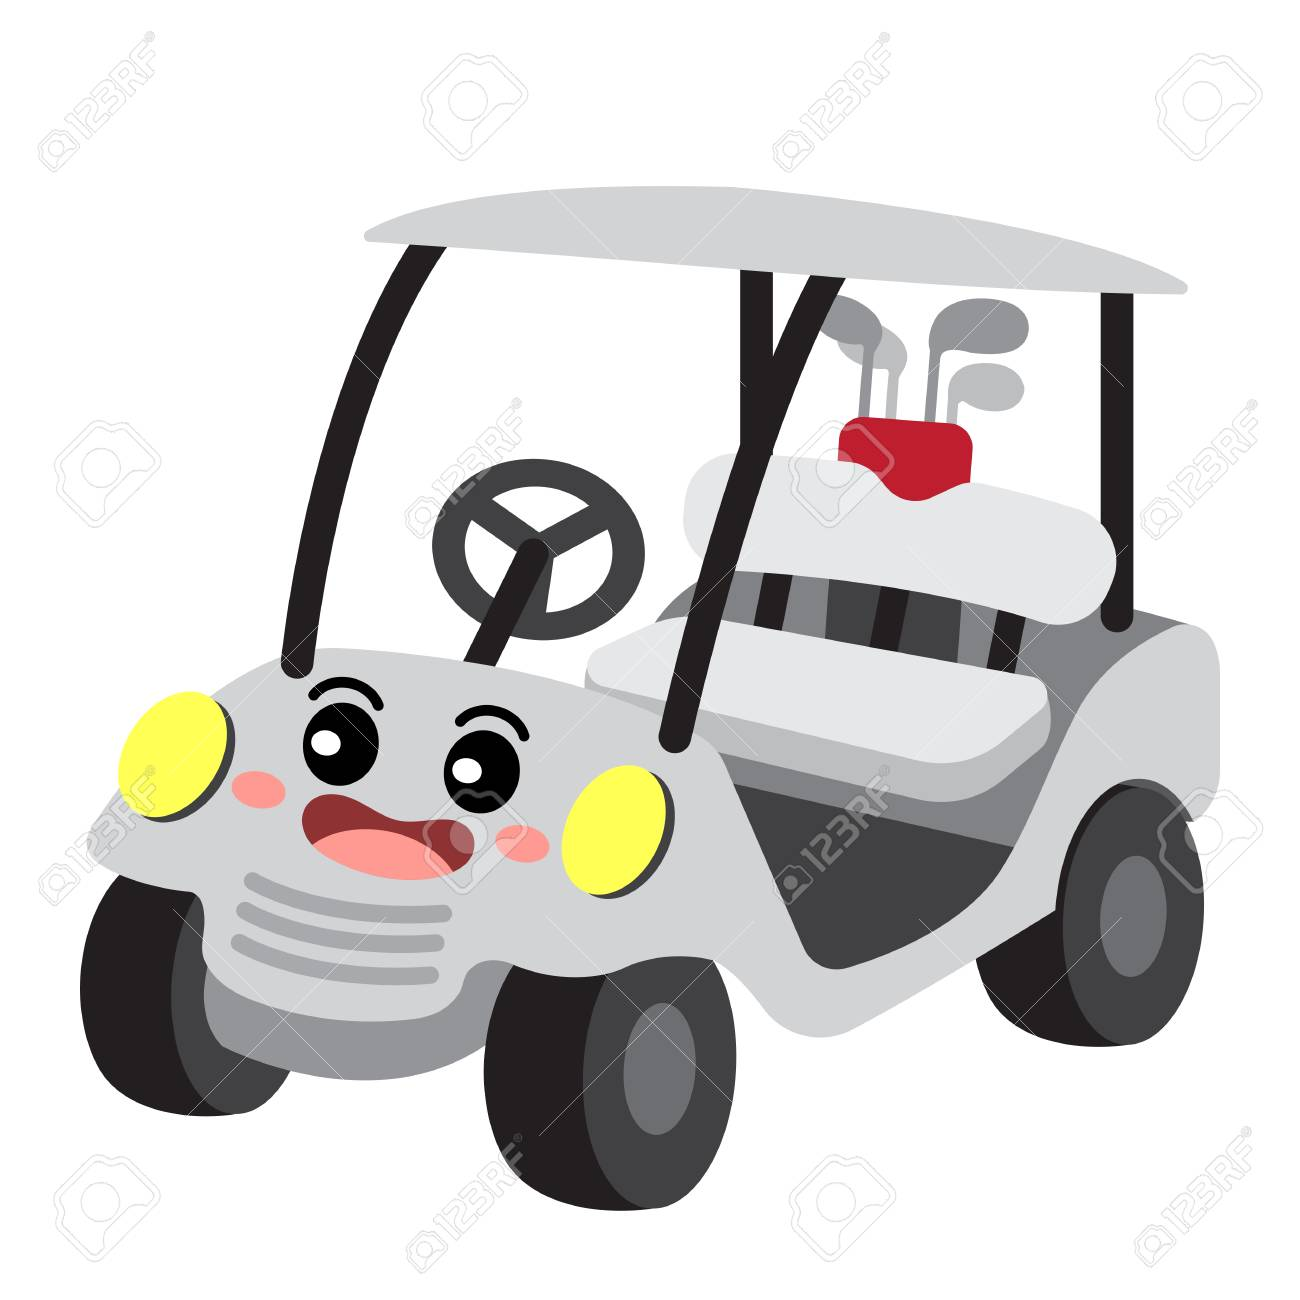 Golf Cart Transportation Cartoon Character Perspective View Isolated Royalty Free Cliparts Vectors And Stock Illustration Image 104069618